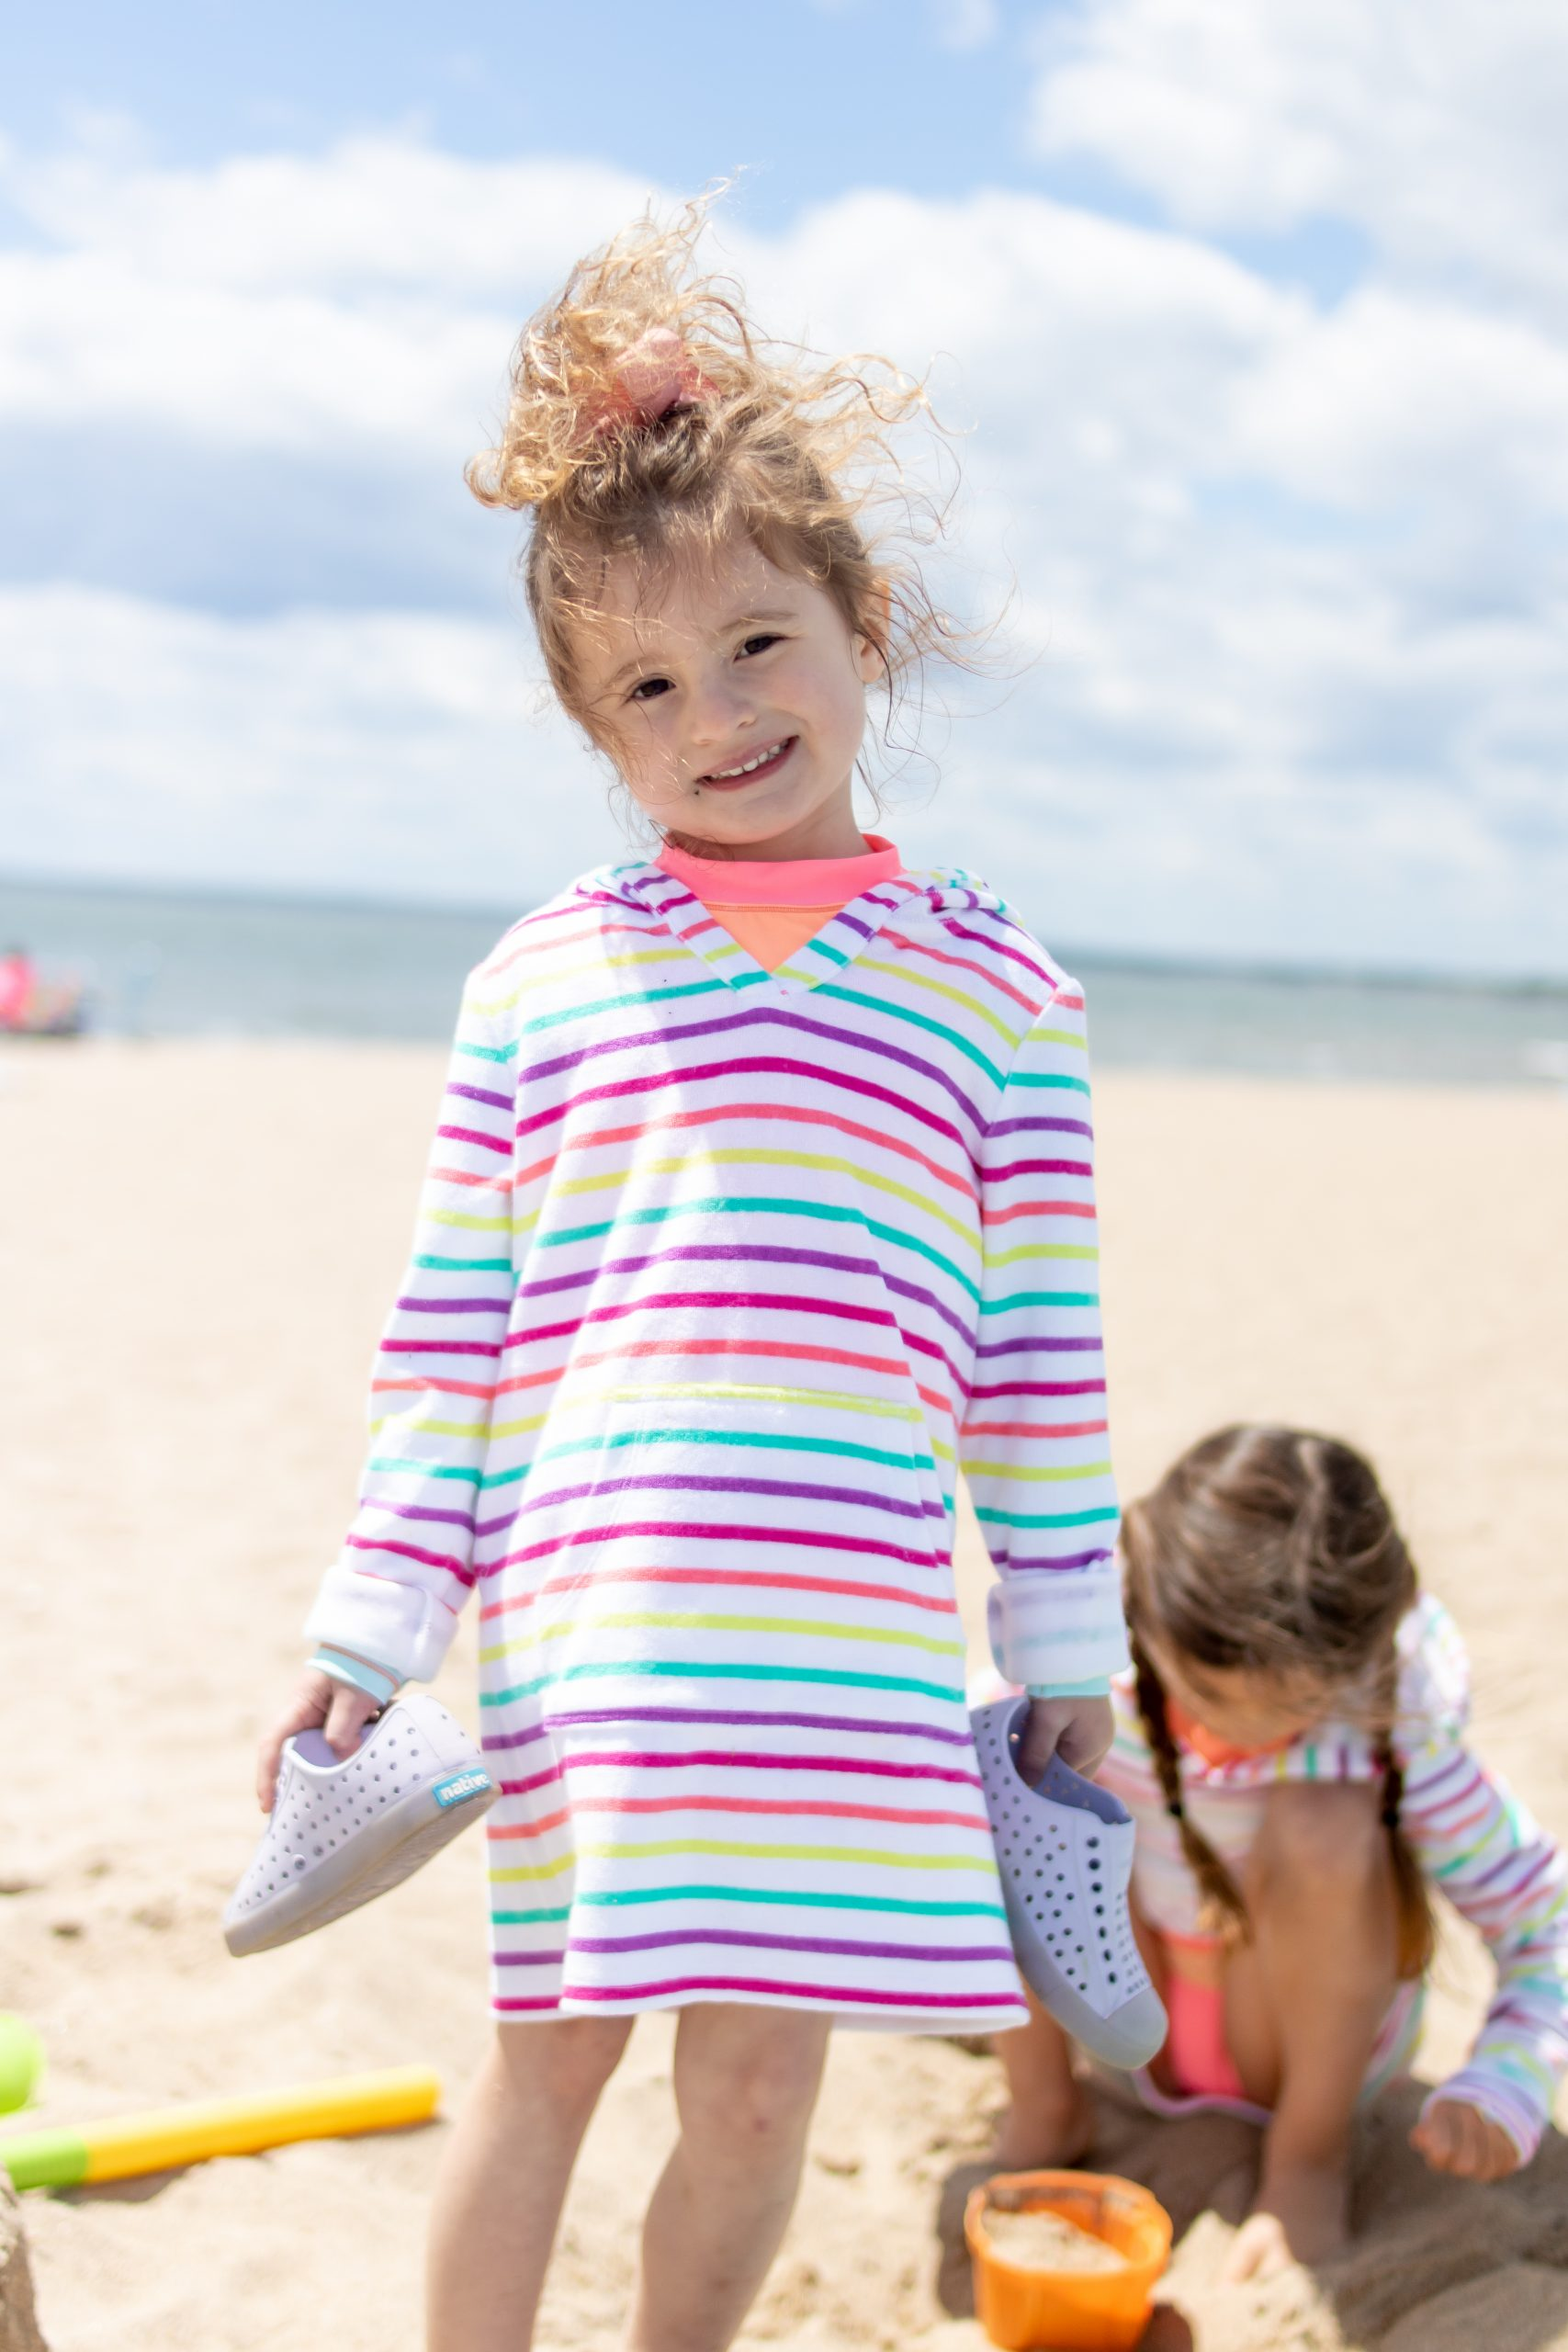 Meigs Point Beach - Lands End Coverup for little girls